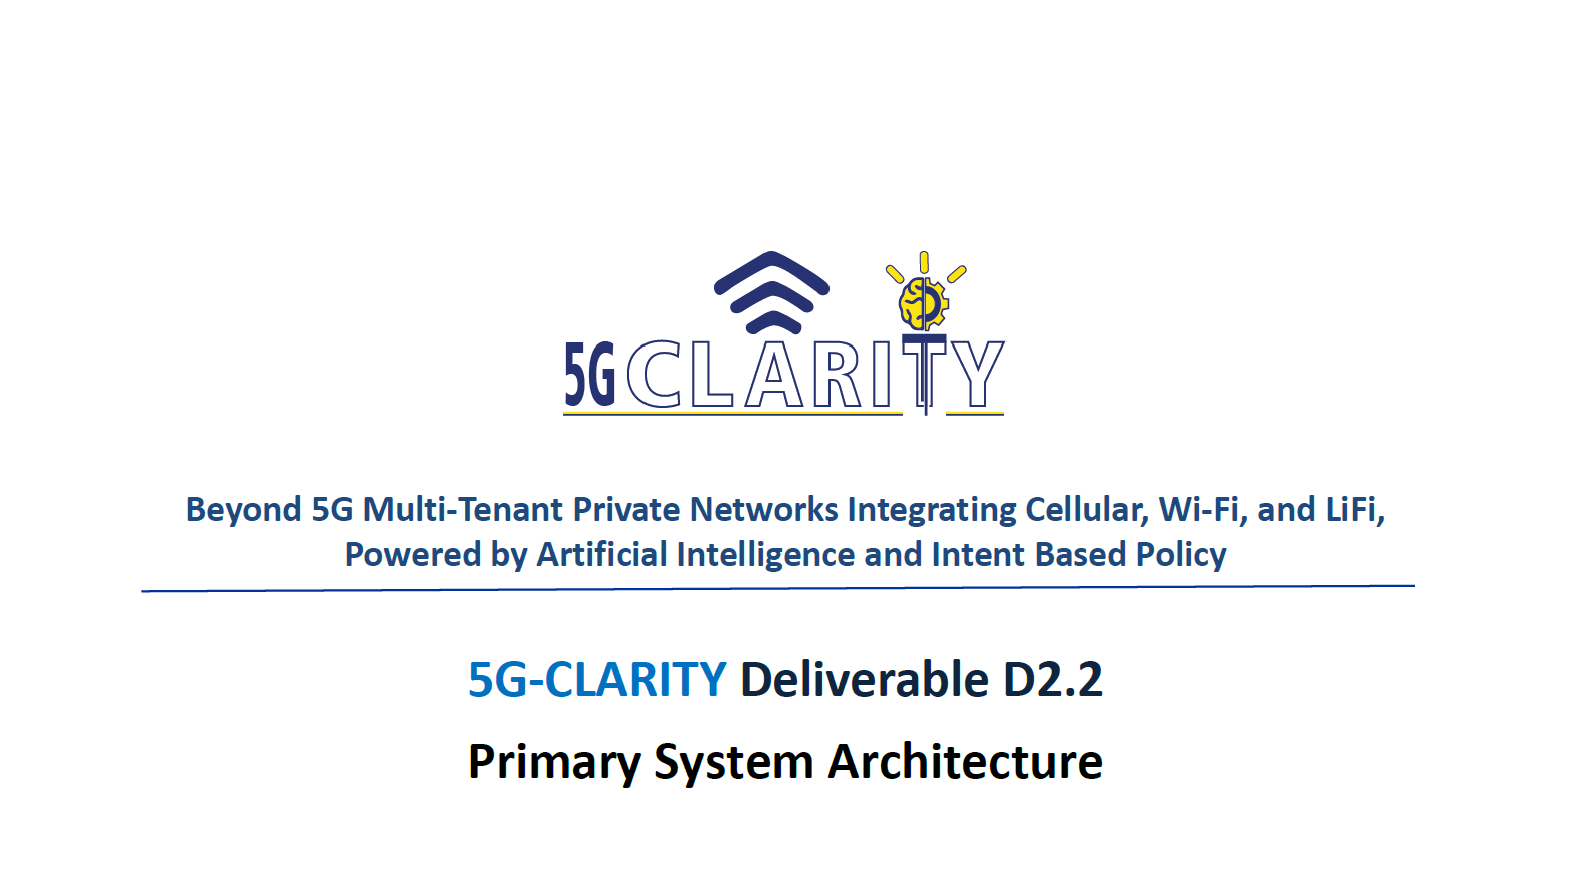 5G-CLARITY deliverable D2.2 on the 'Primary System Architecture' is now available!